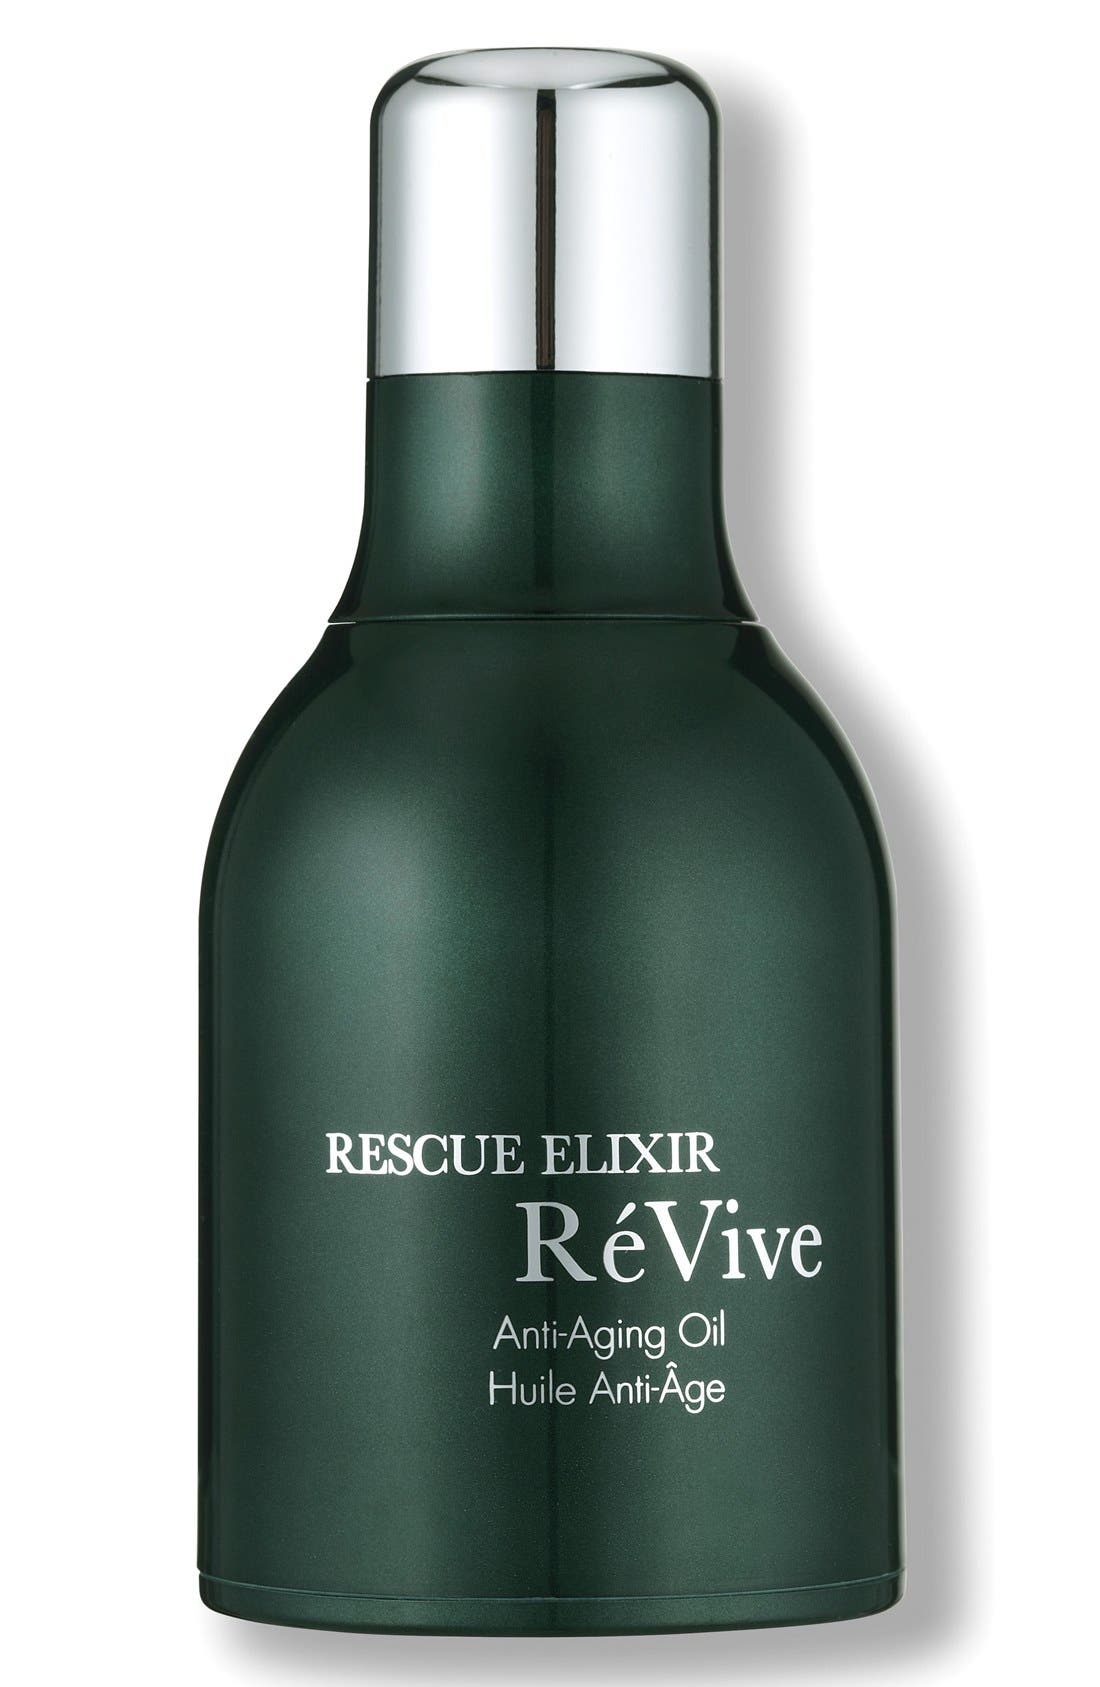 RéVive® Rescue Elixir Anti-Aging Oil